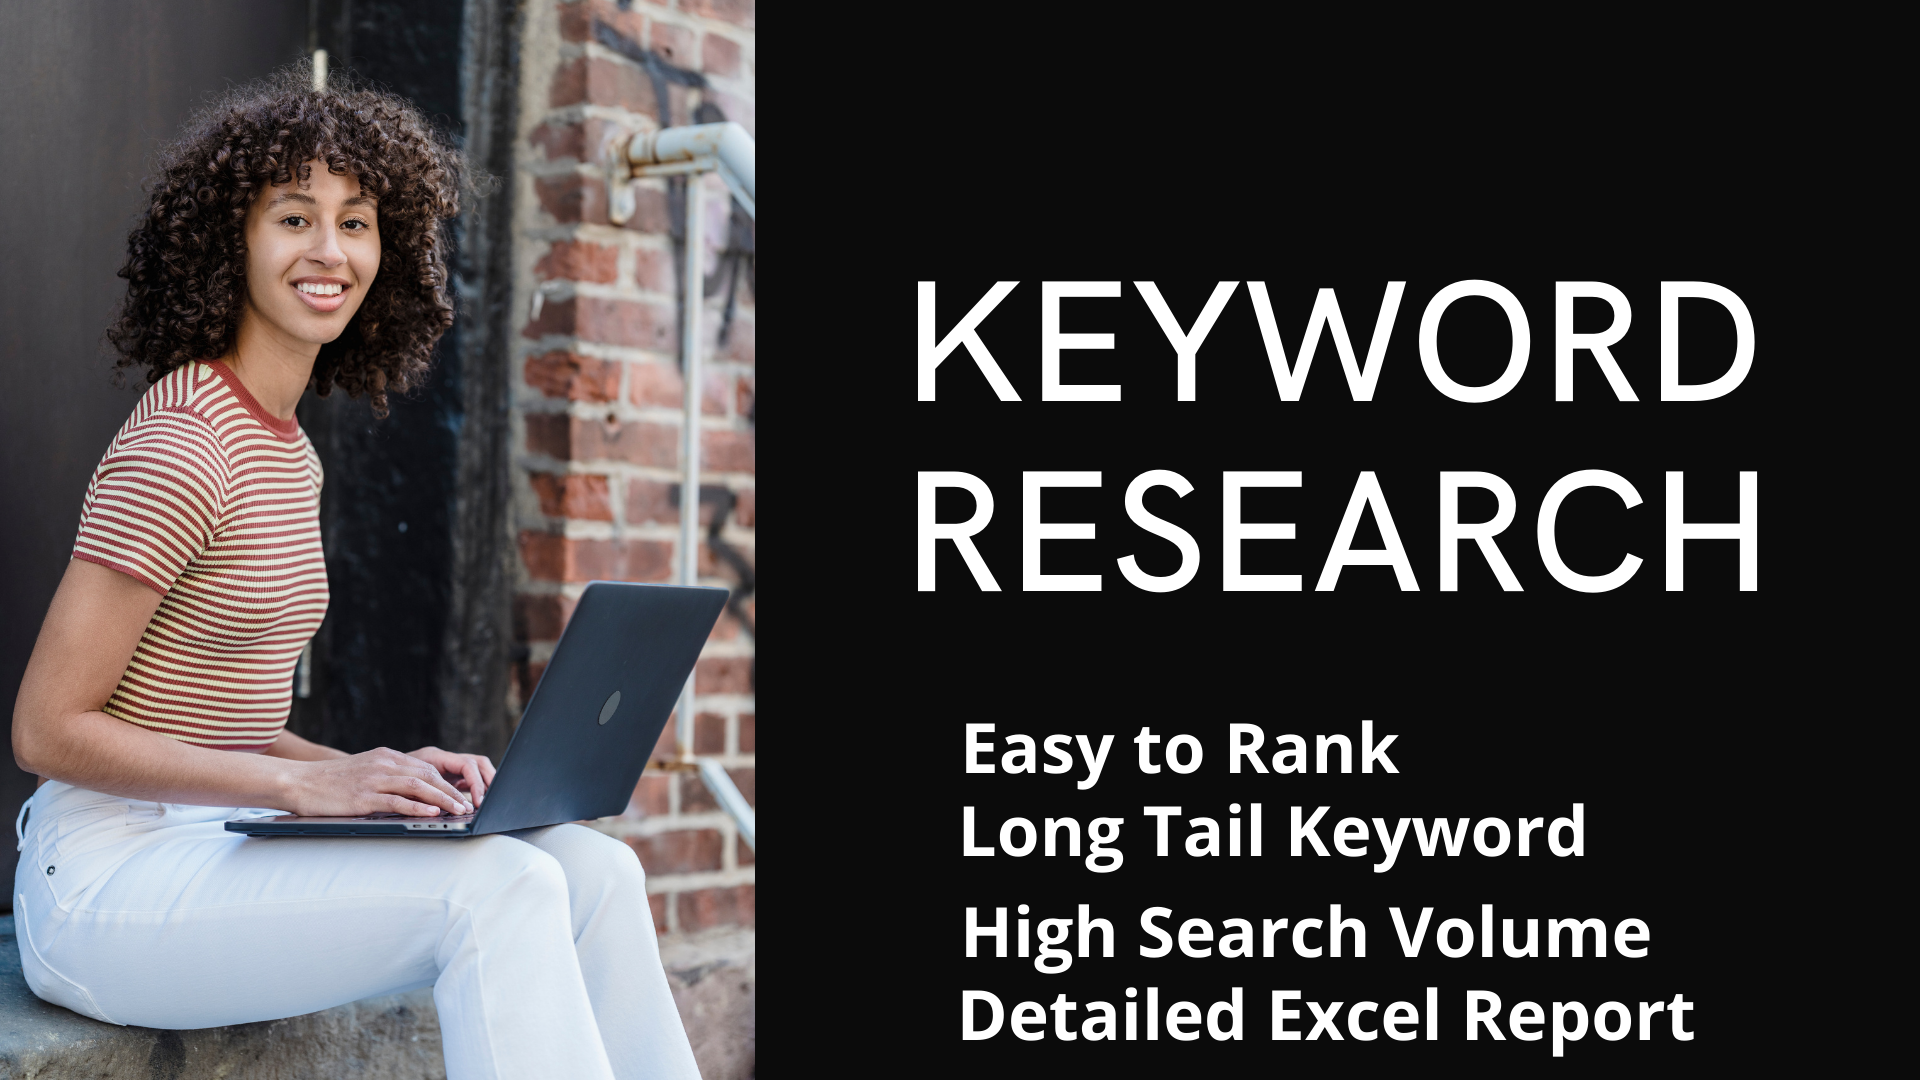 For Google Top Ranking,  I will provide 50 profitable,  kgr,  long tail,  premium and golden keywords